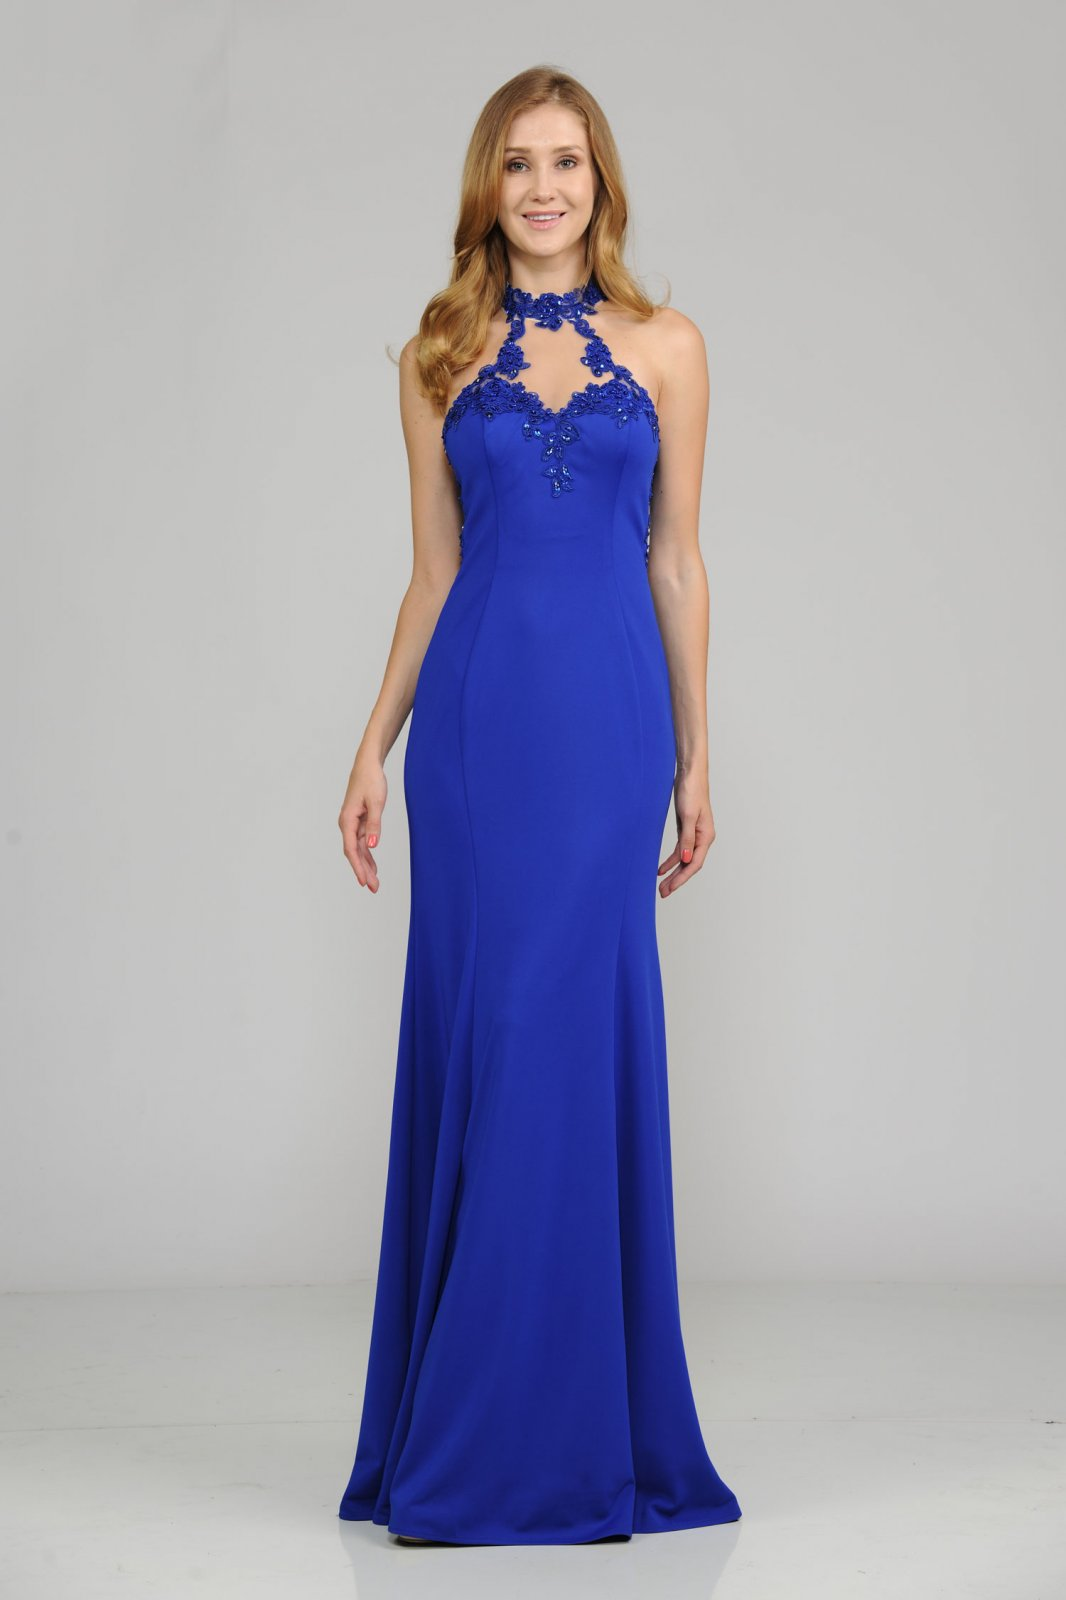 Royal high neck embellished with lace appliques and stones long Prom Dress